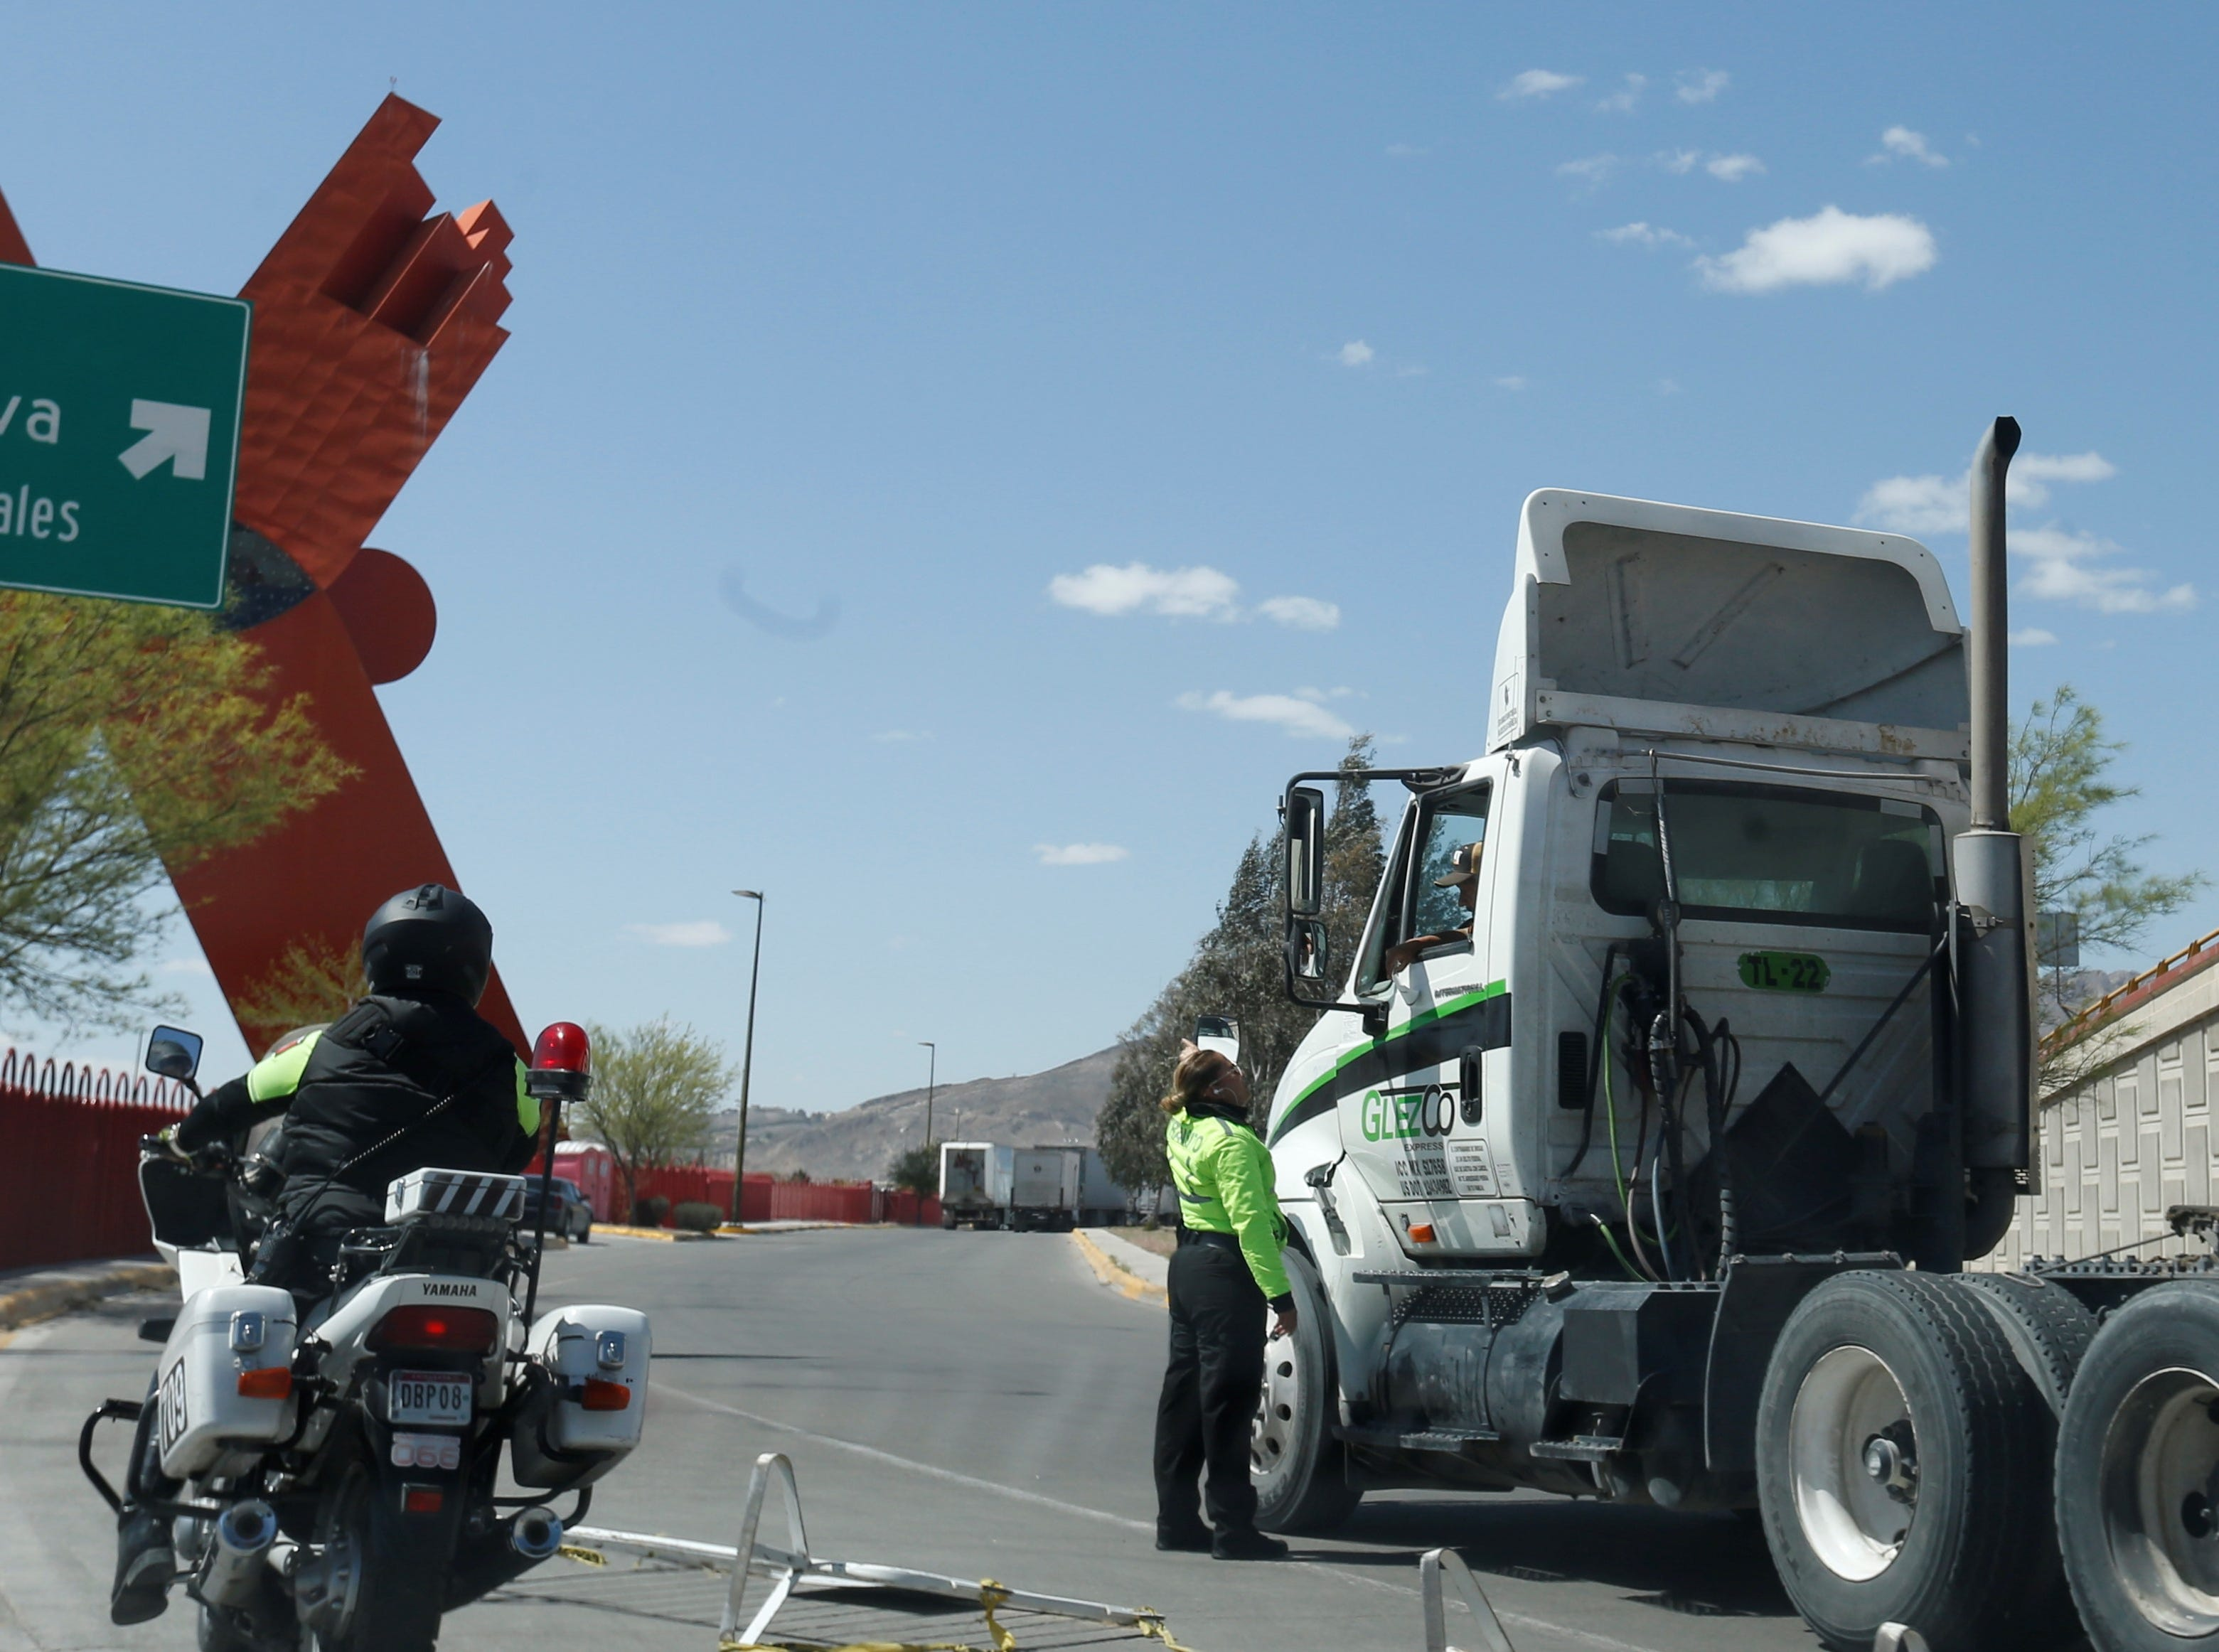 The city of Juarez's traffic police help direct long lines of commercial trucks on Juan Pablo II Boulevard as they wait to cross into the United States.